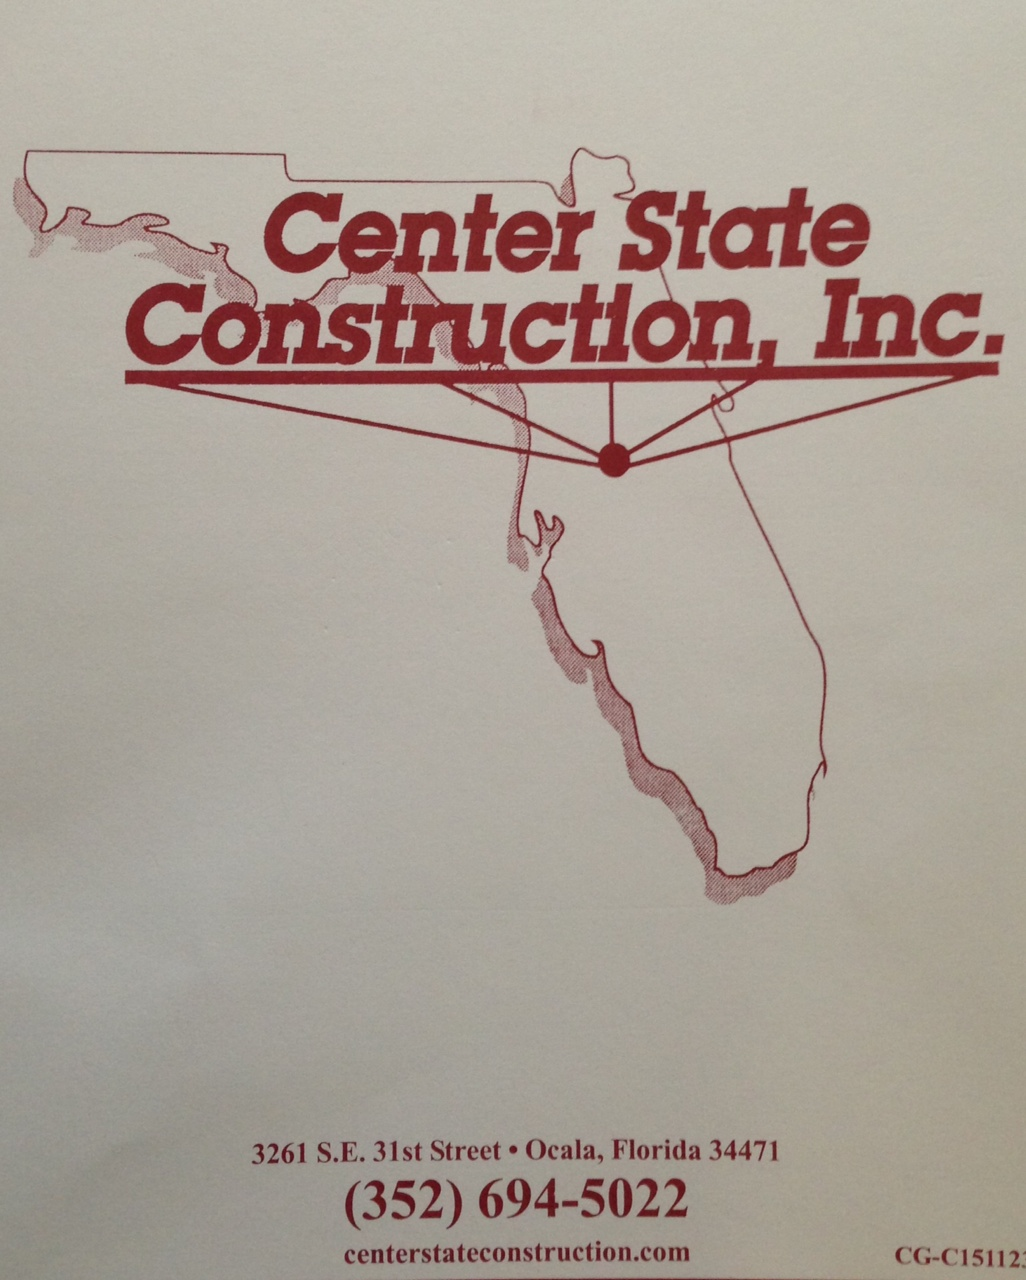 Center State Construction